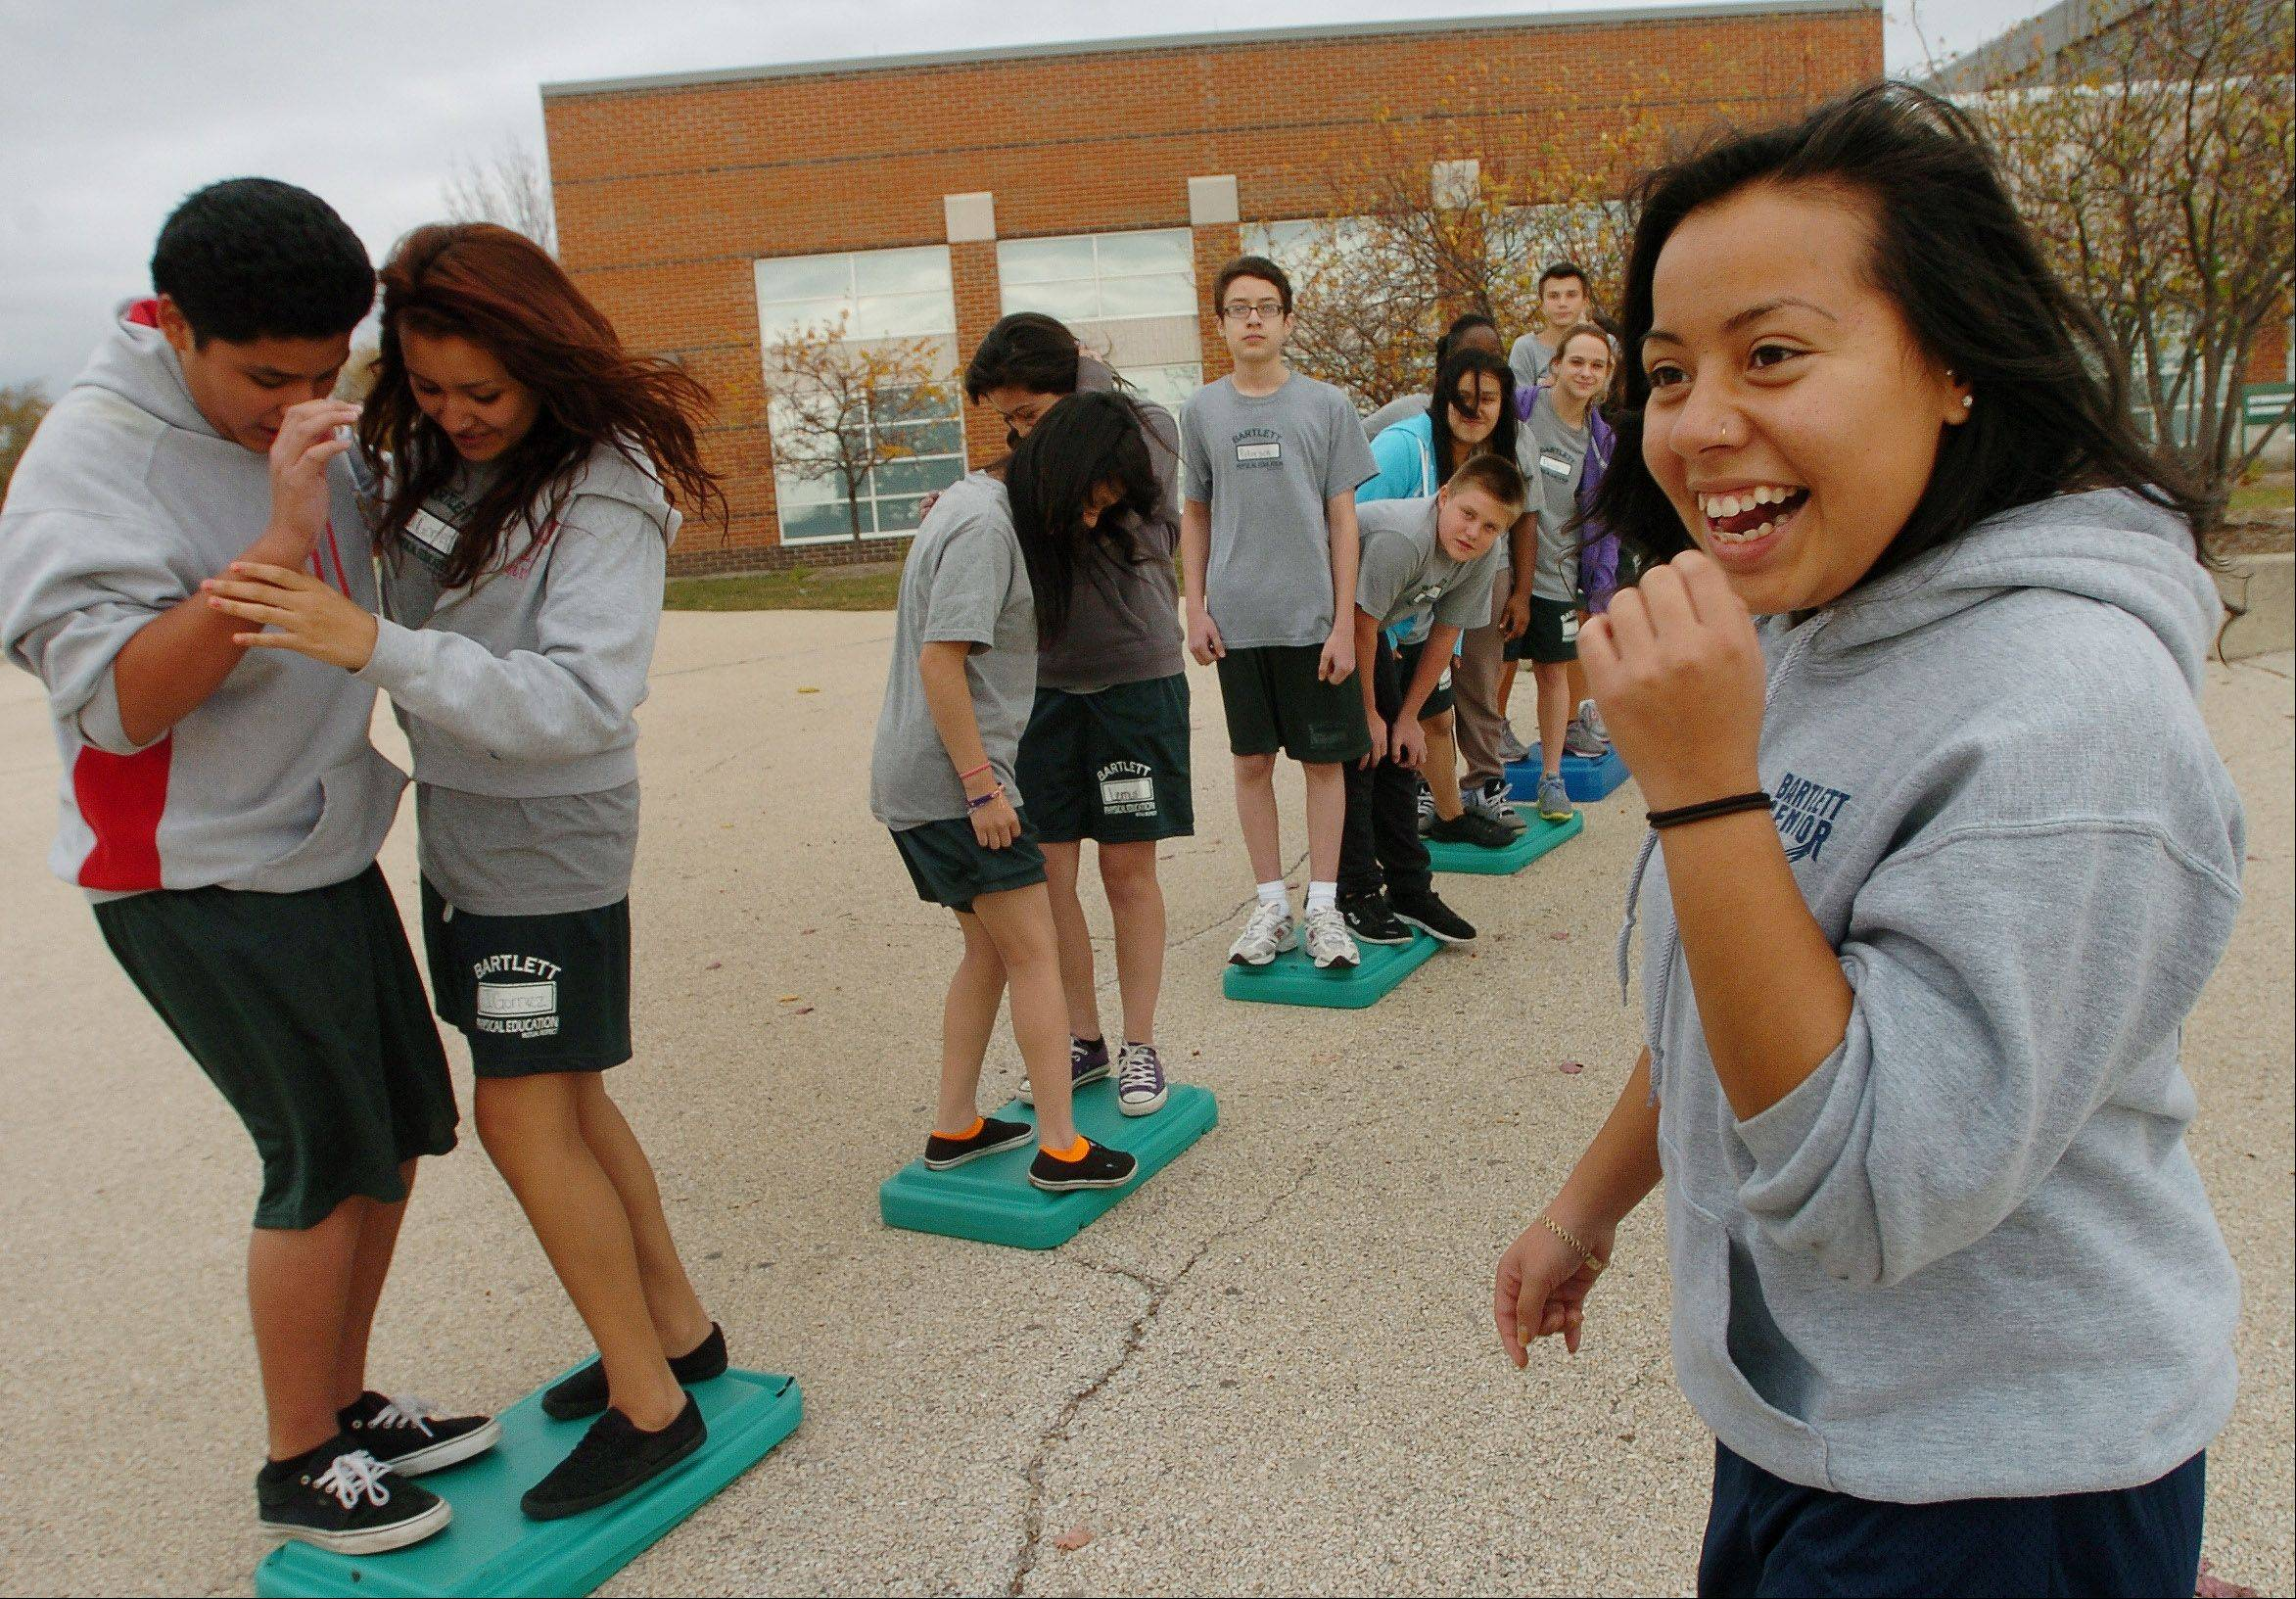 Selena Cuevas, right, guides freshmen through a team-building exercise as part of the Bartlett High senior leaders program.